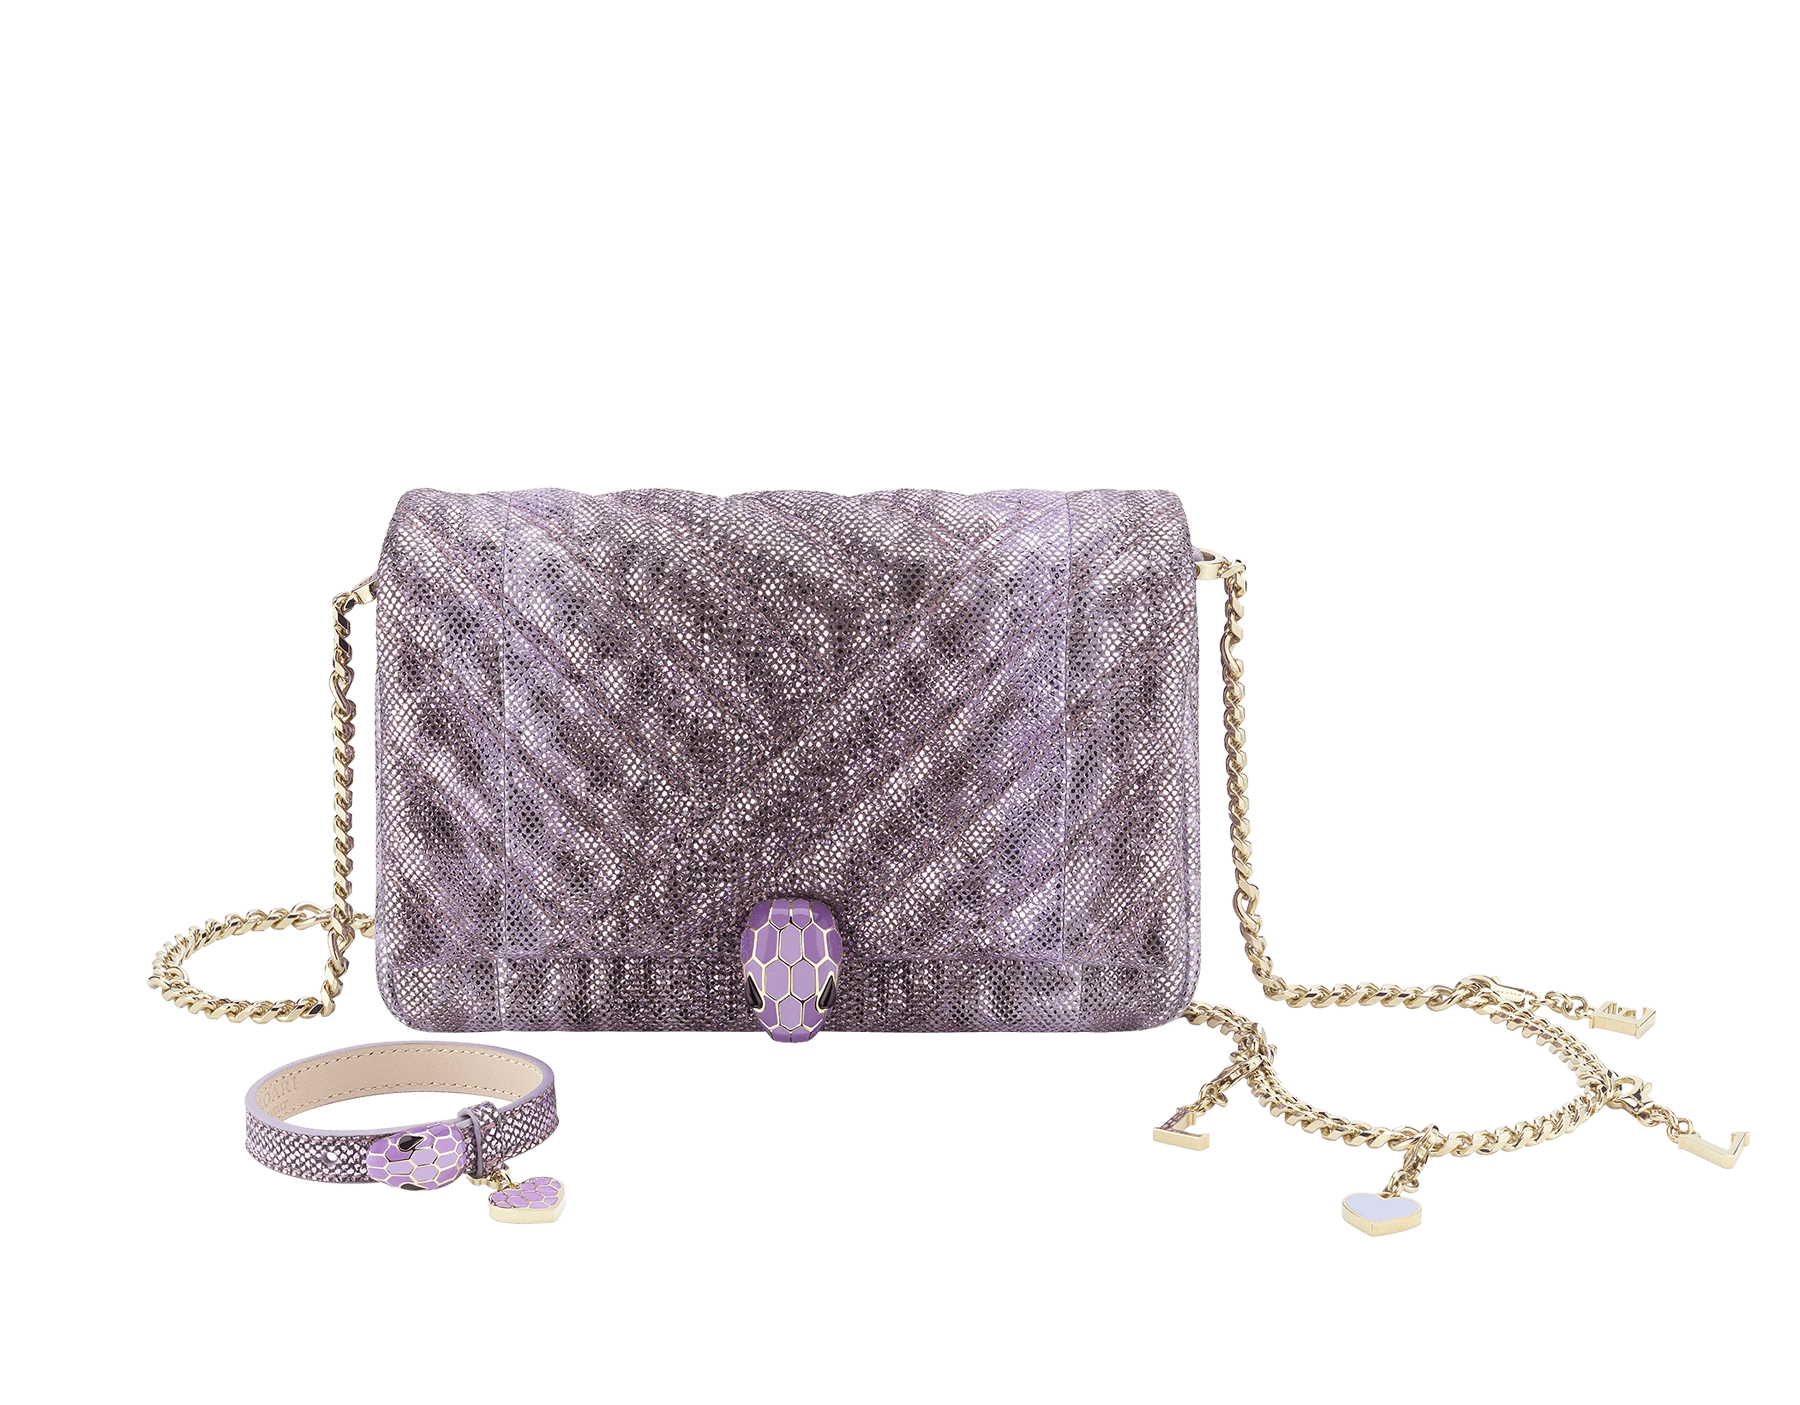 """""Chinese Valentine's Day"""" Special Edition exclusive gift set featuring a bag and a bracelet. """"Serpenti Cabochon"""" mini bag in soft matelassè lavender metallic karung skin, with a graphic motif. Light gold plated tempting brass snakehead closure in dégradé lavender from ultra-dark to light enamel and black onyx eyes. """"Serpenti Forever"""" bracelet in lavender metallic karung skin with an iconic snakehead decoration in dégradé lavender from ultra-dark to light enamel and black onyx eyes. 290472 image 2"